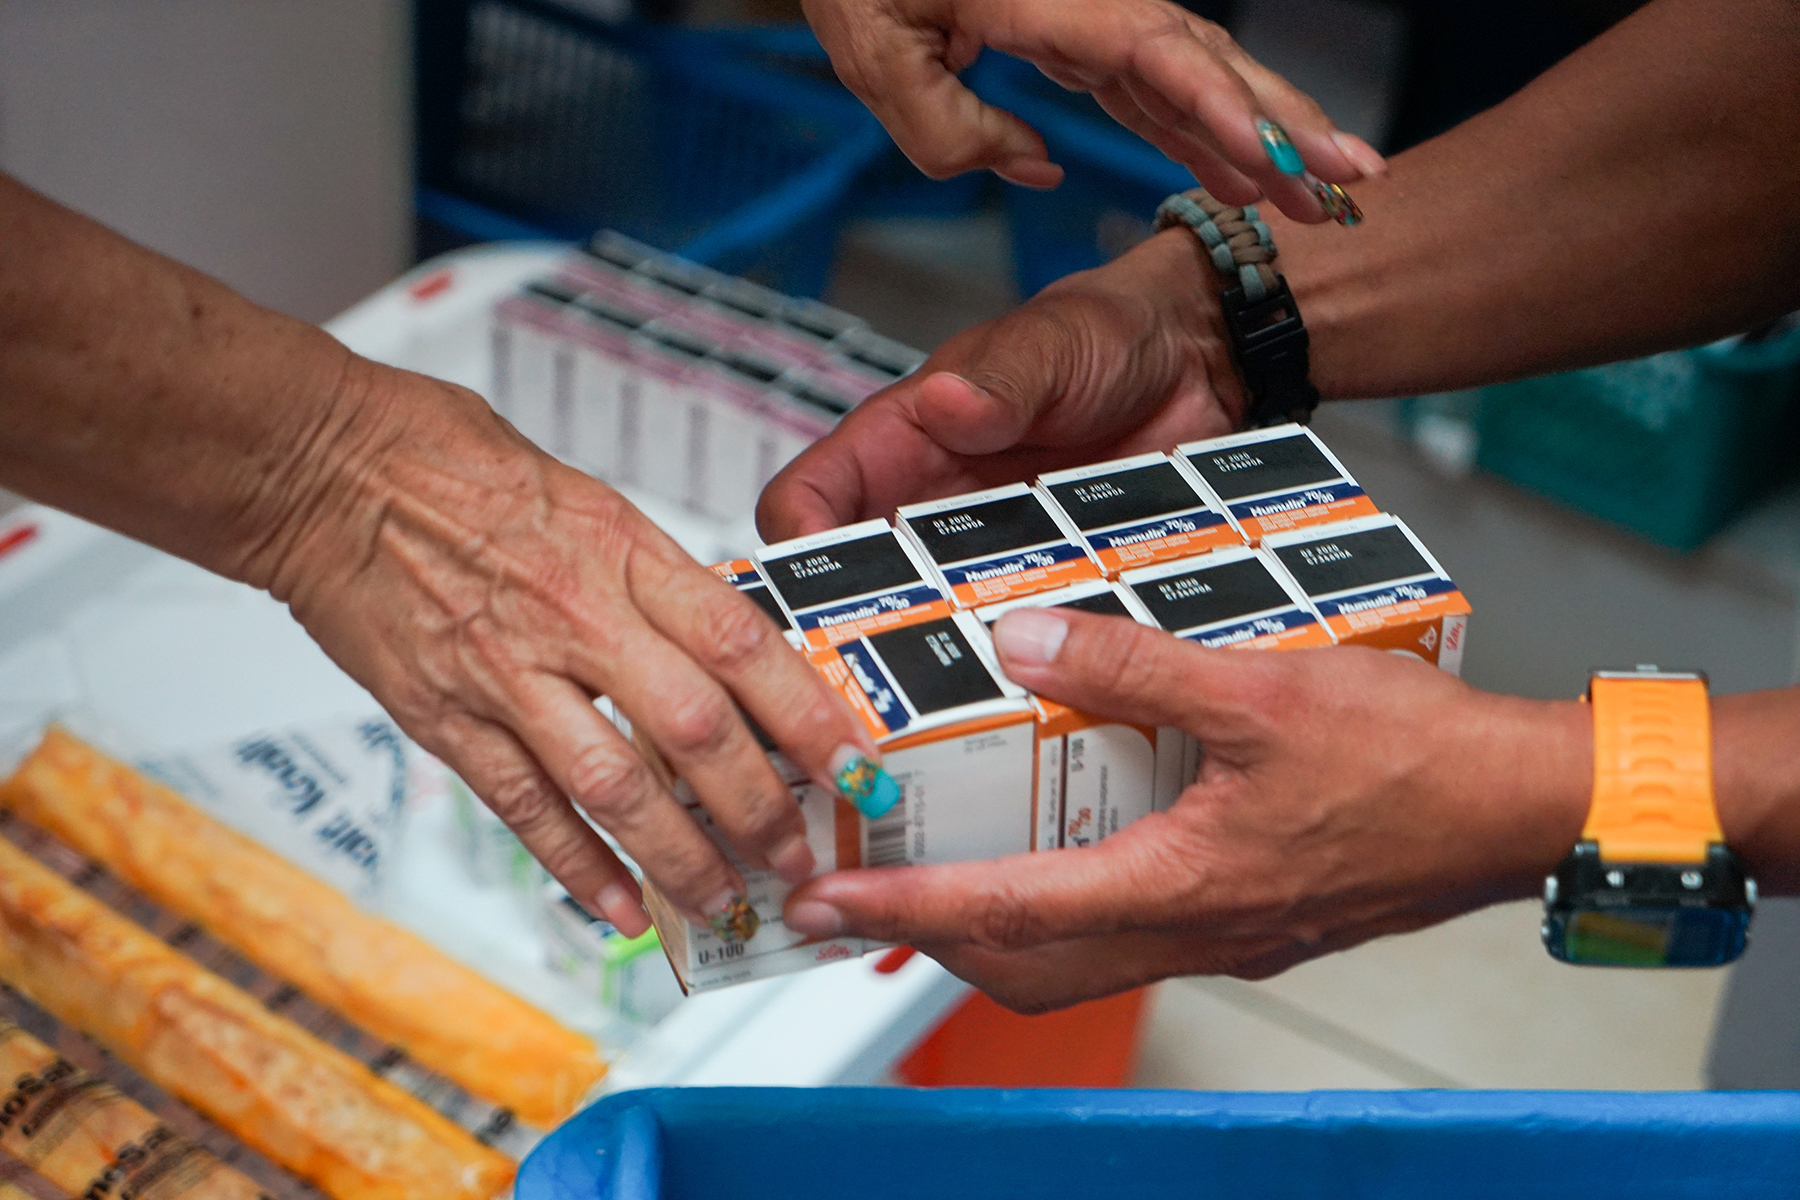 Florida Medical Center staff inventory delivered insulin Friday. (Lara Cooper/Direct Relief)